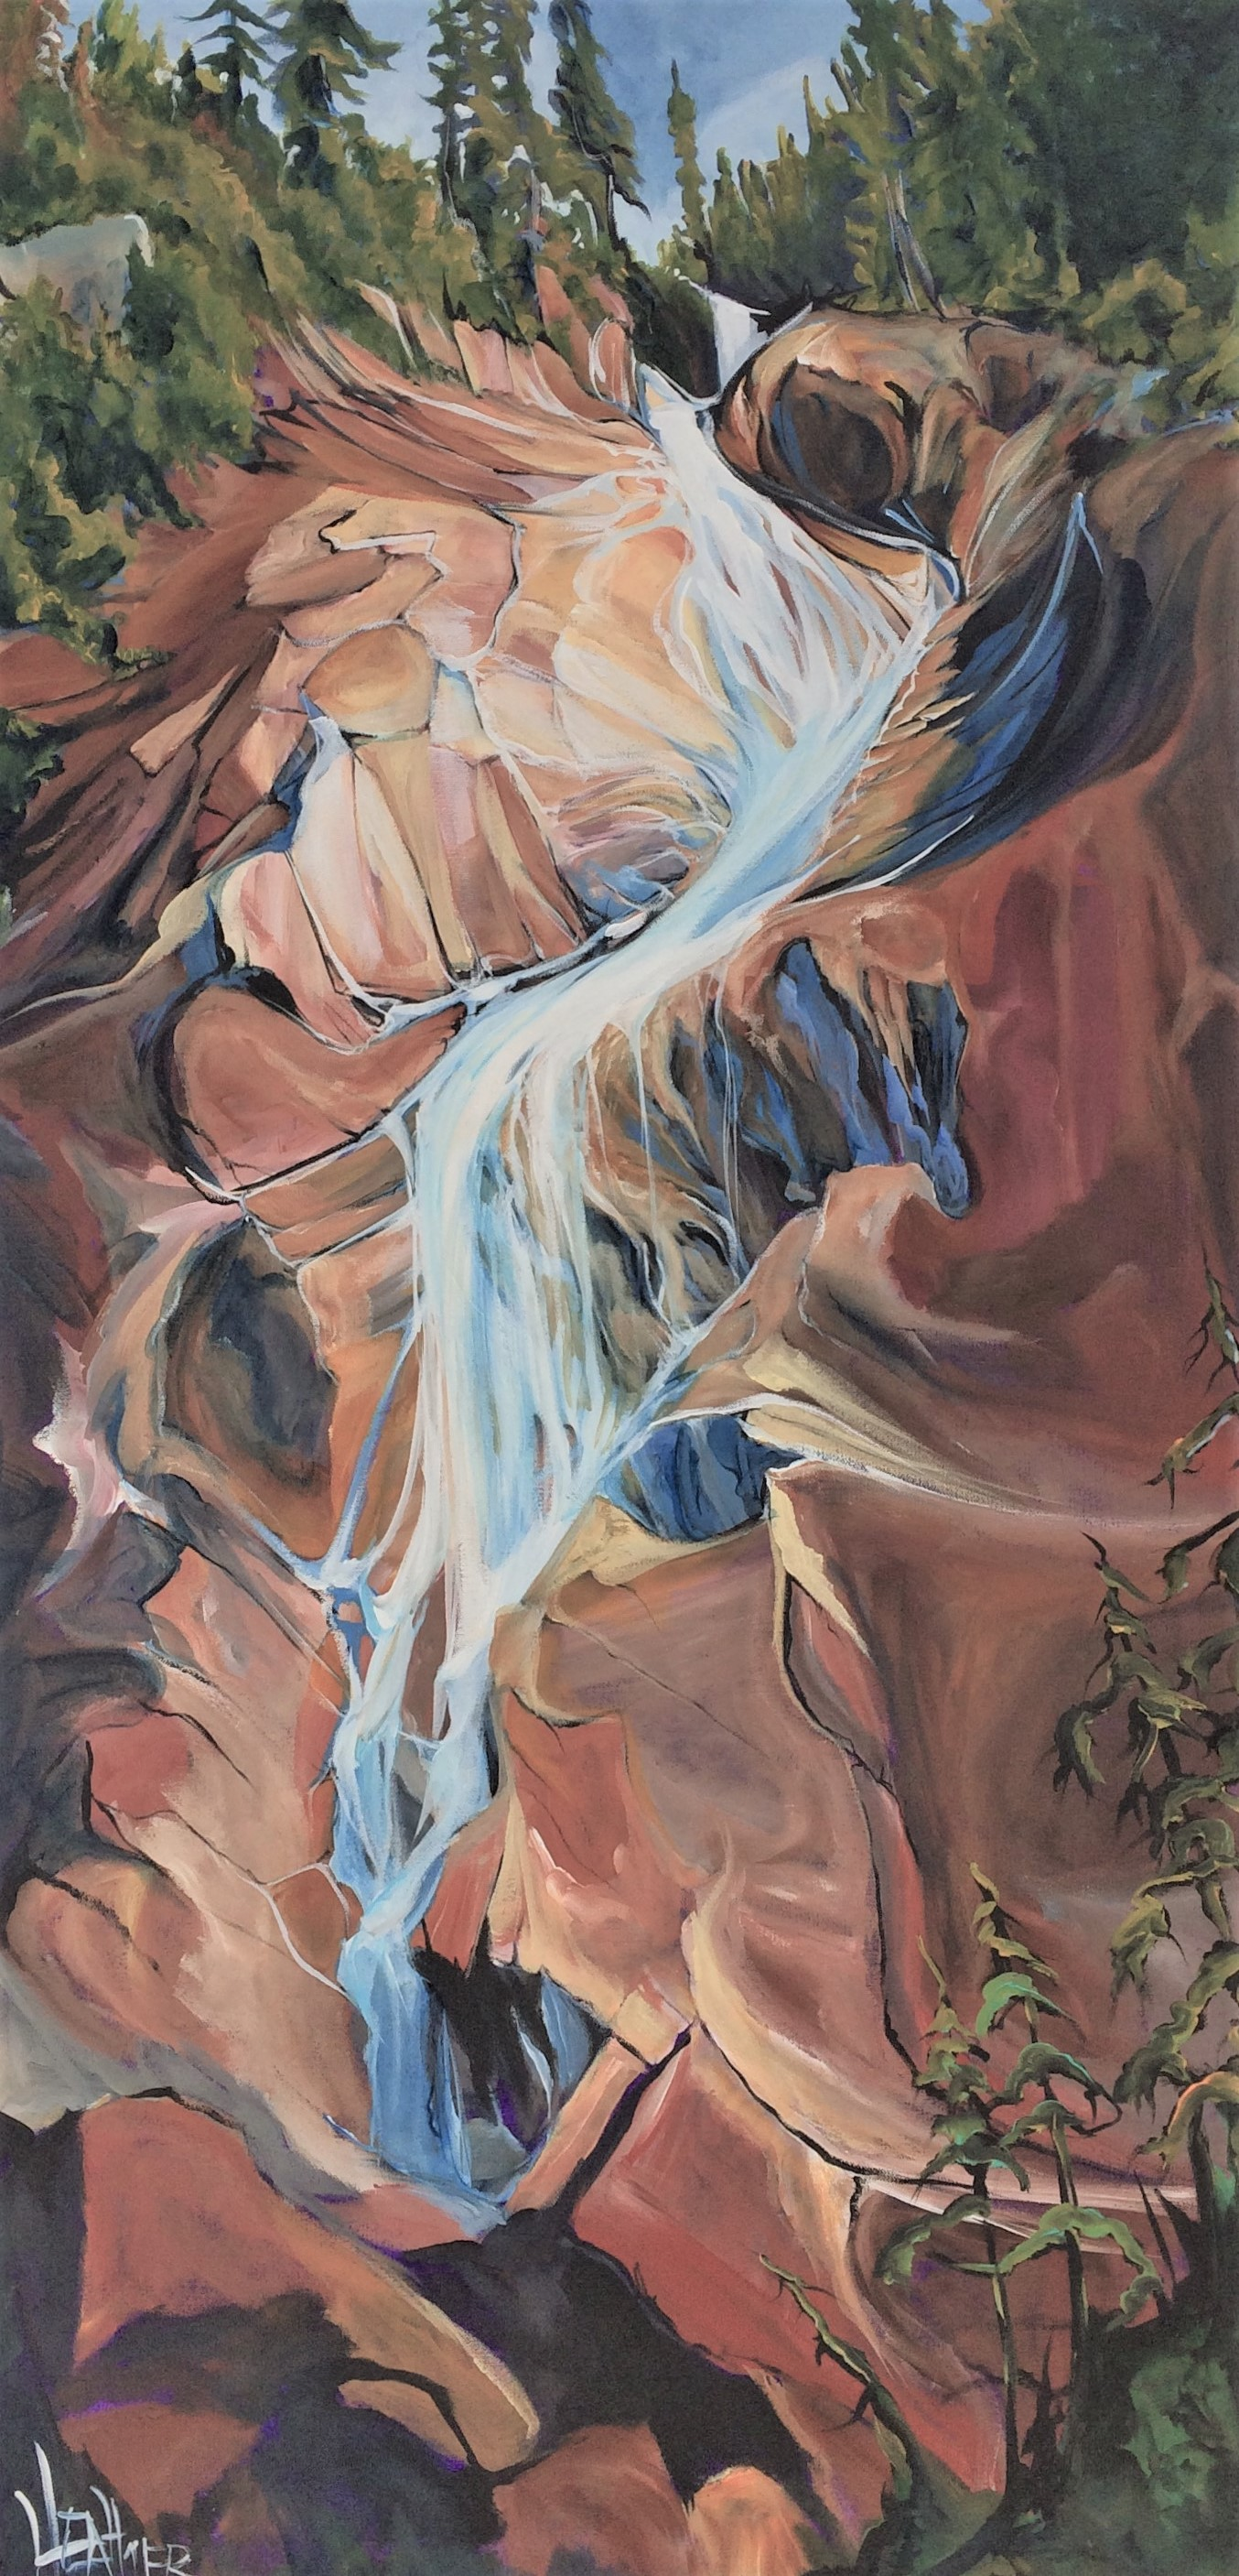 Shannon Falls Serendipity SOLD